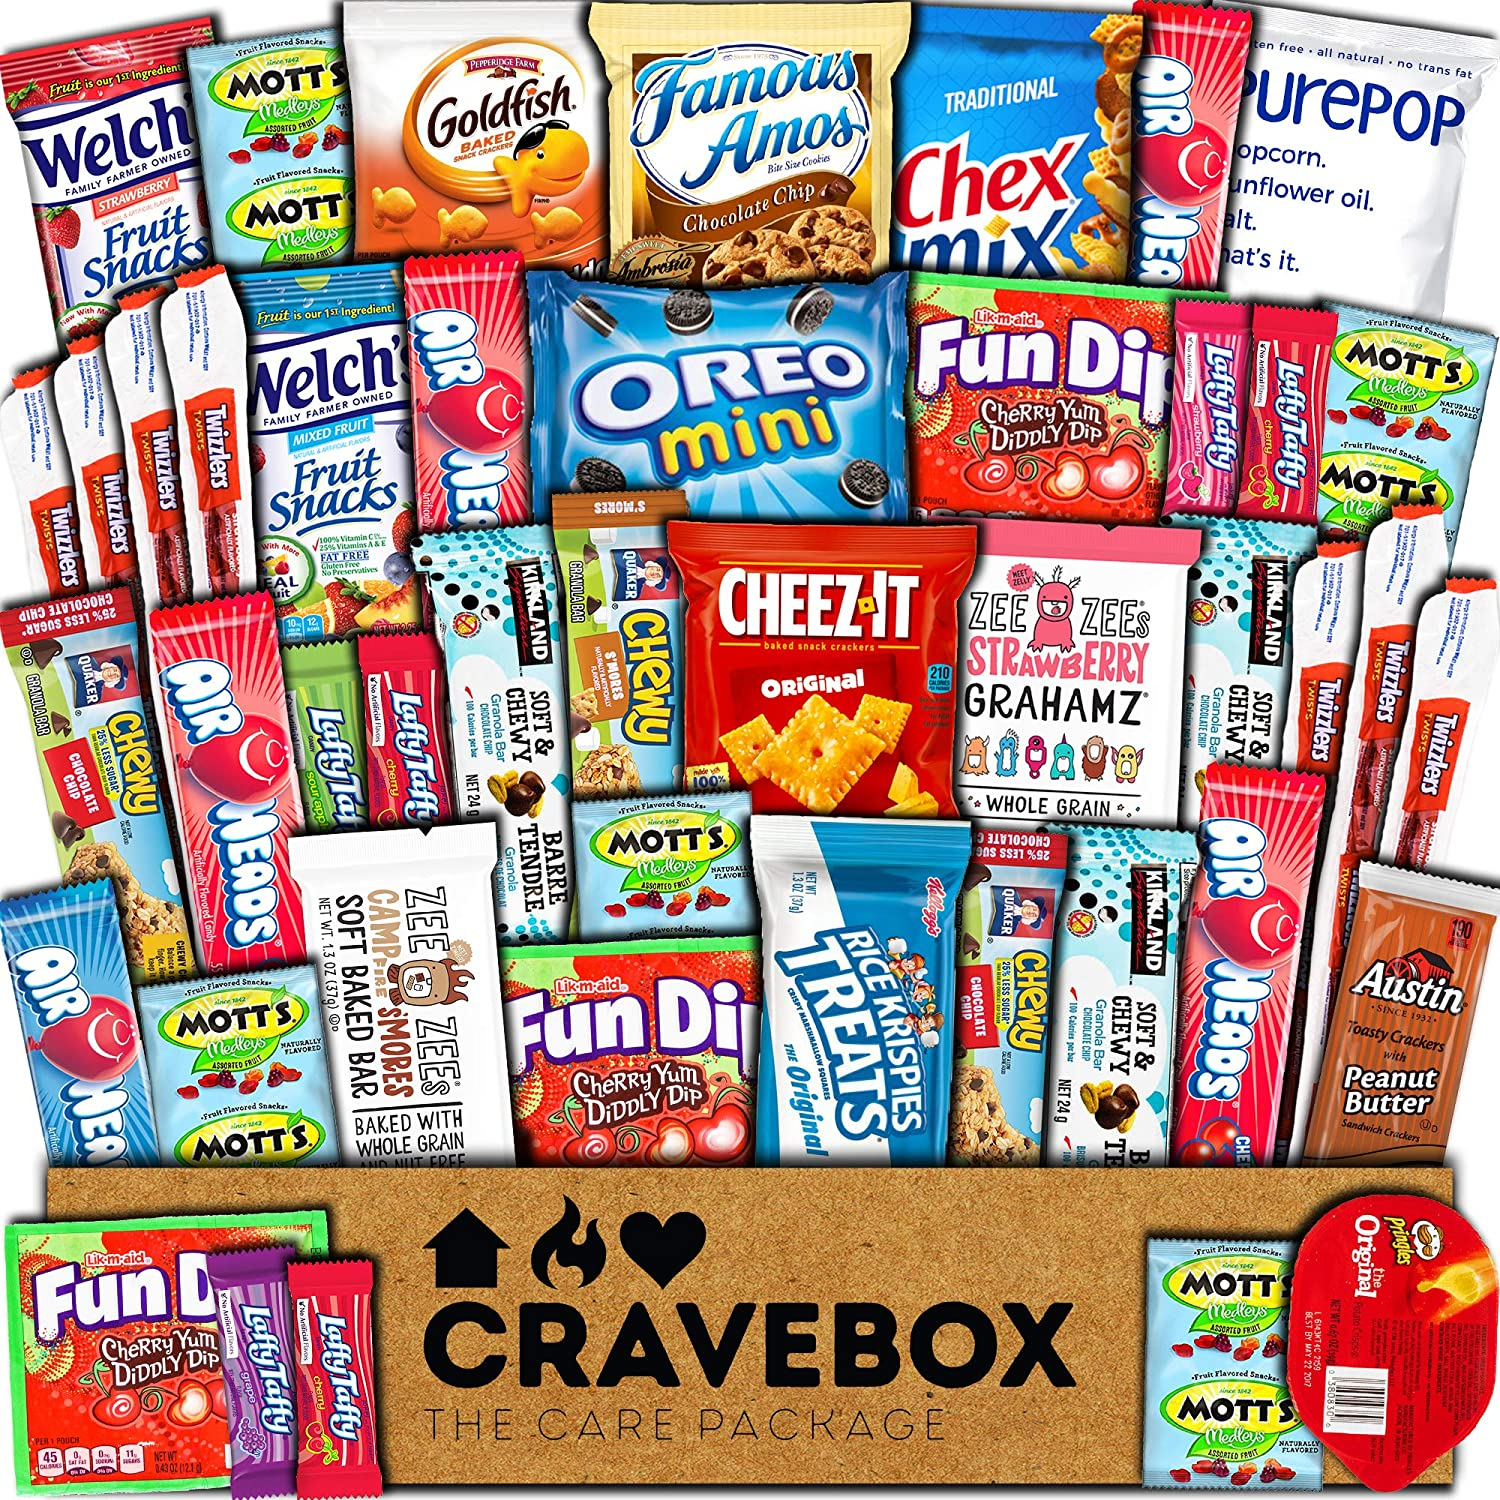 CraveBox Care Package (45 Count) Snacks Food Cookies Chocolate Bar Chips Candy Ultimate Variety Gift Box Pack Assortment Basket Bundle Mix Bulk Sampler Treats College Students Final Exam Office Summer A12TsI2BEqcL